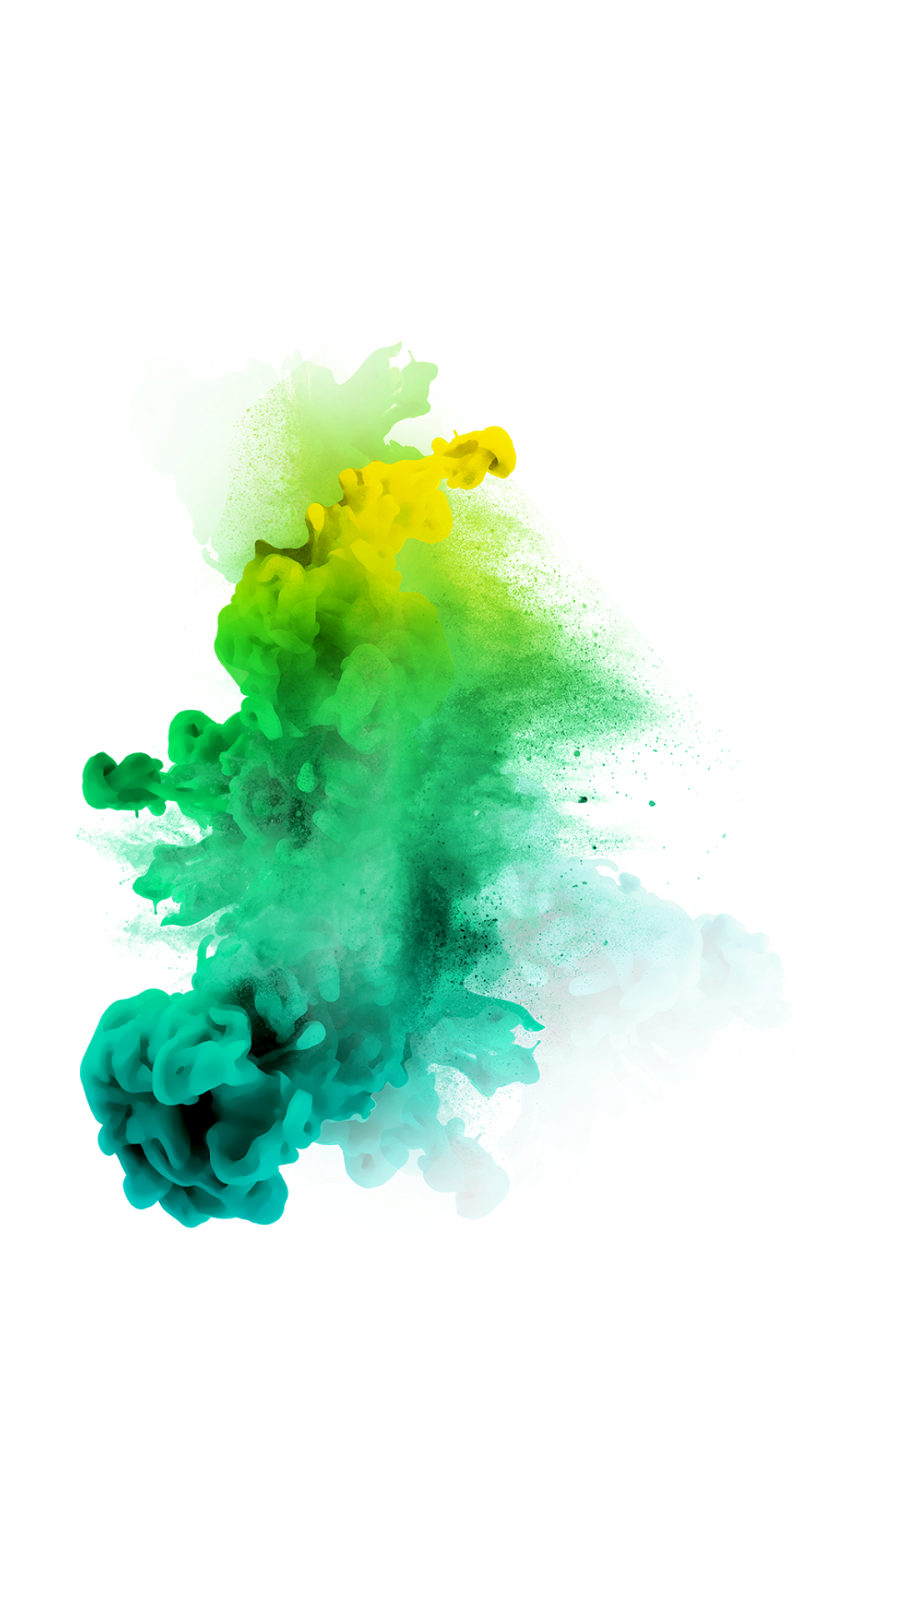 Green smoke png. Image free download picture